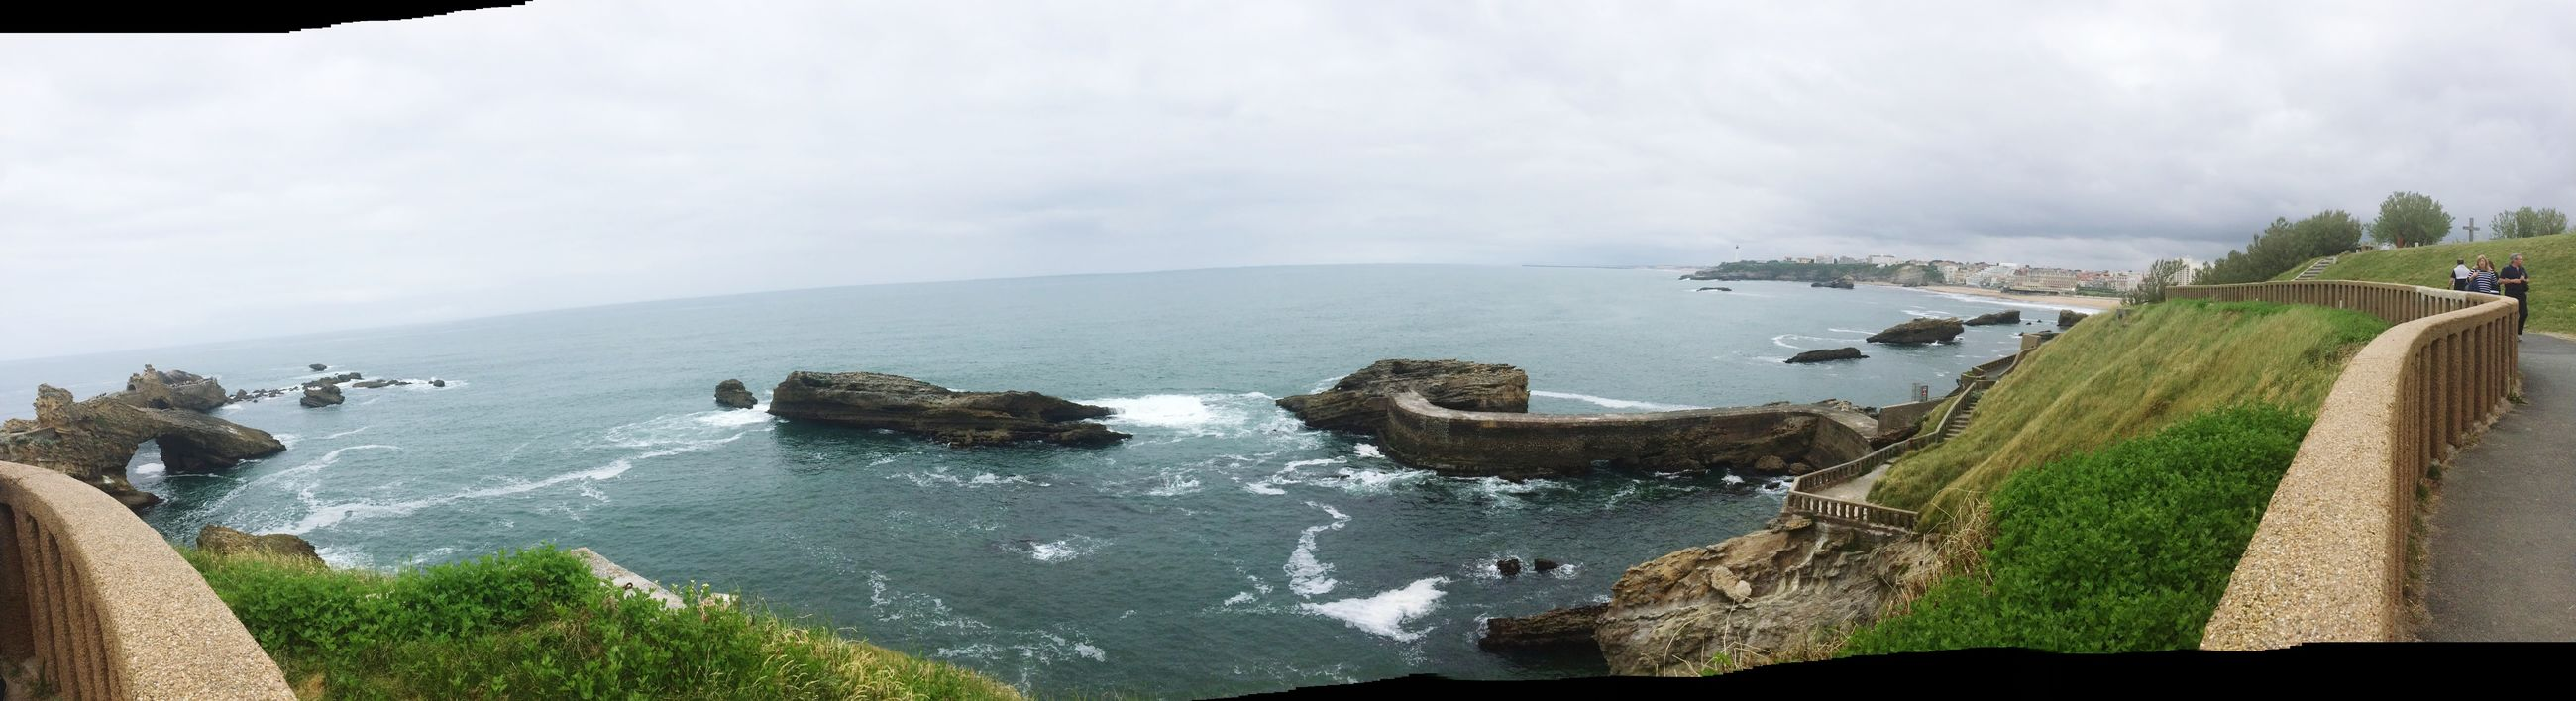 Biarritz Sea Sunset Check This Out That's Me Hello World Taking Photos Landscape Photography Panorama